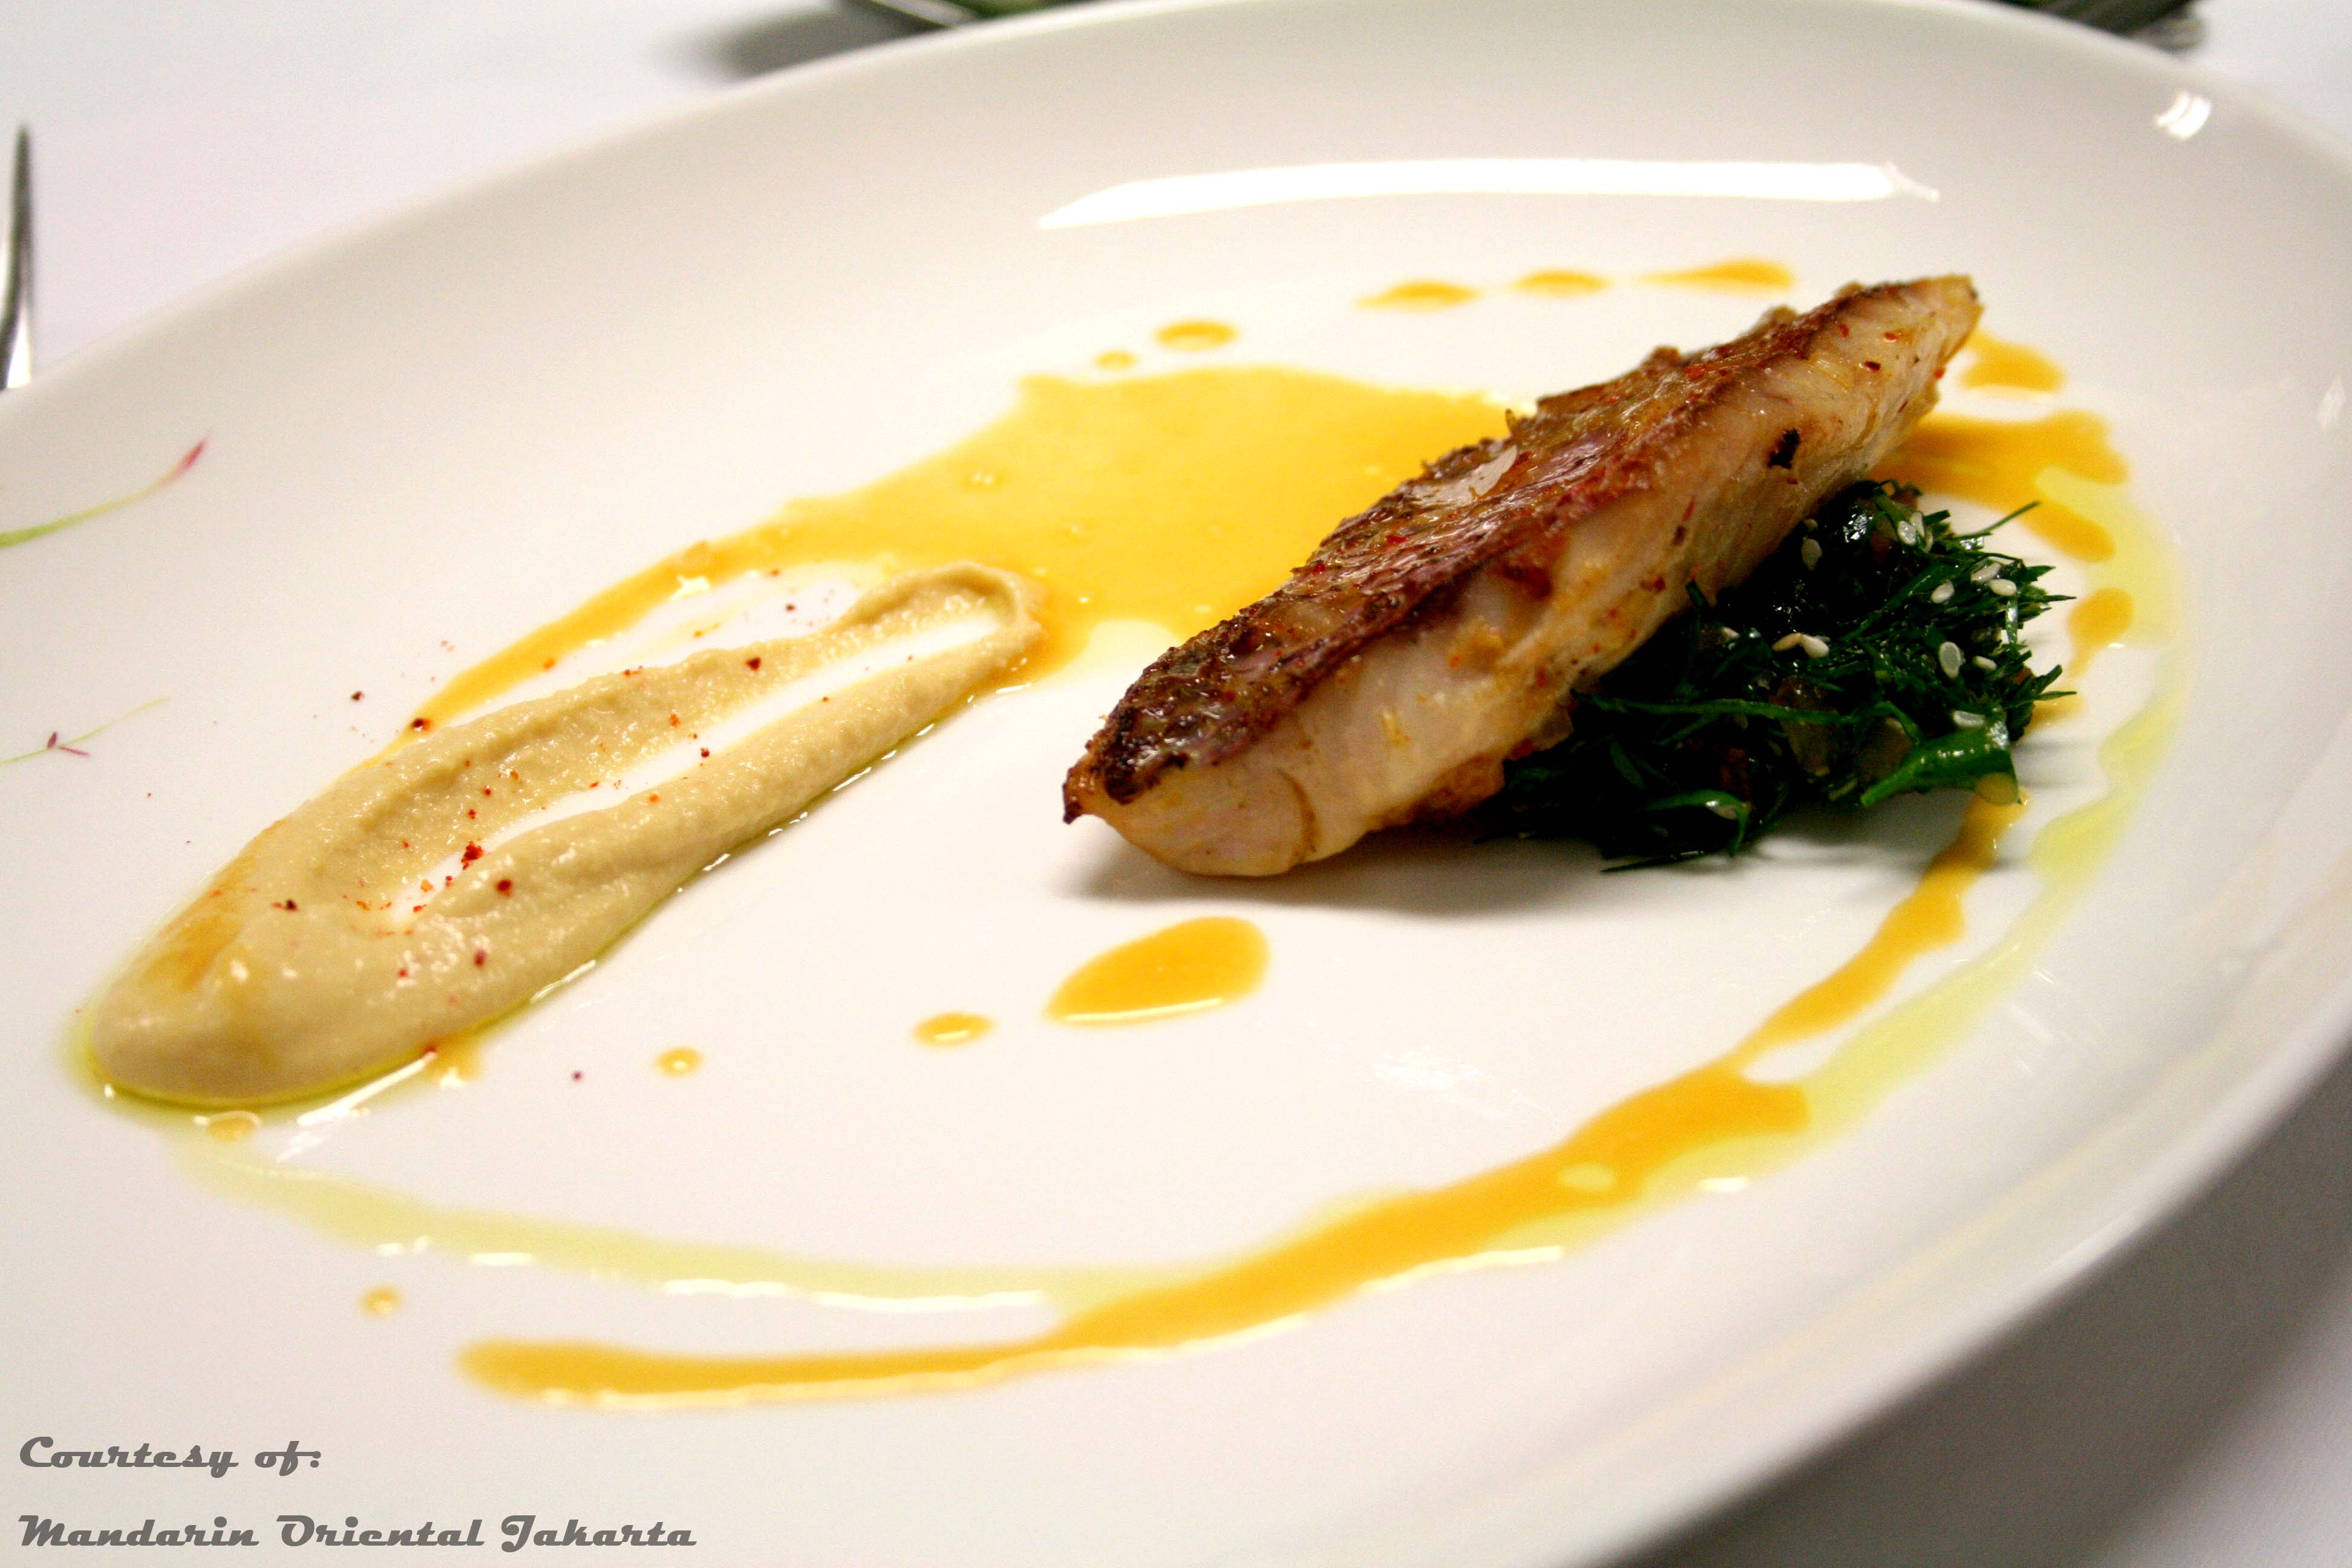 The Haute Cuisine Experience The Magical French Dining